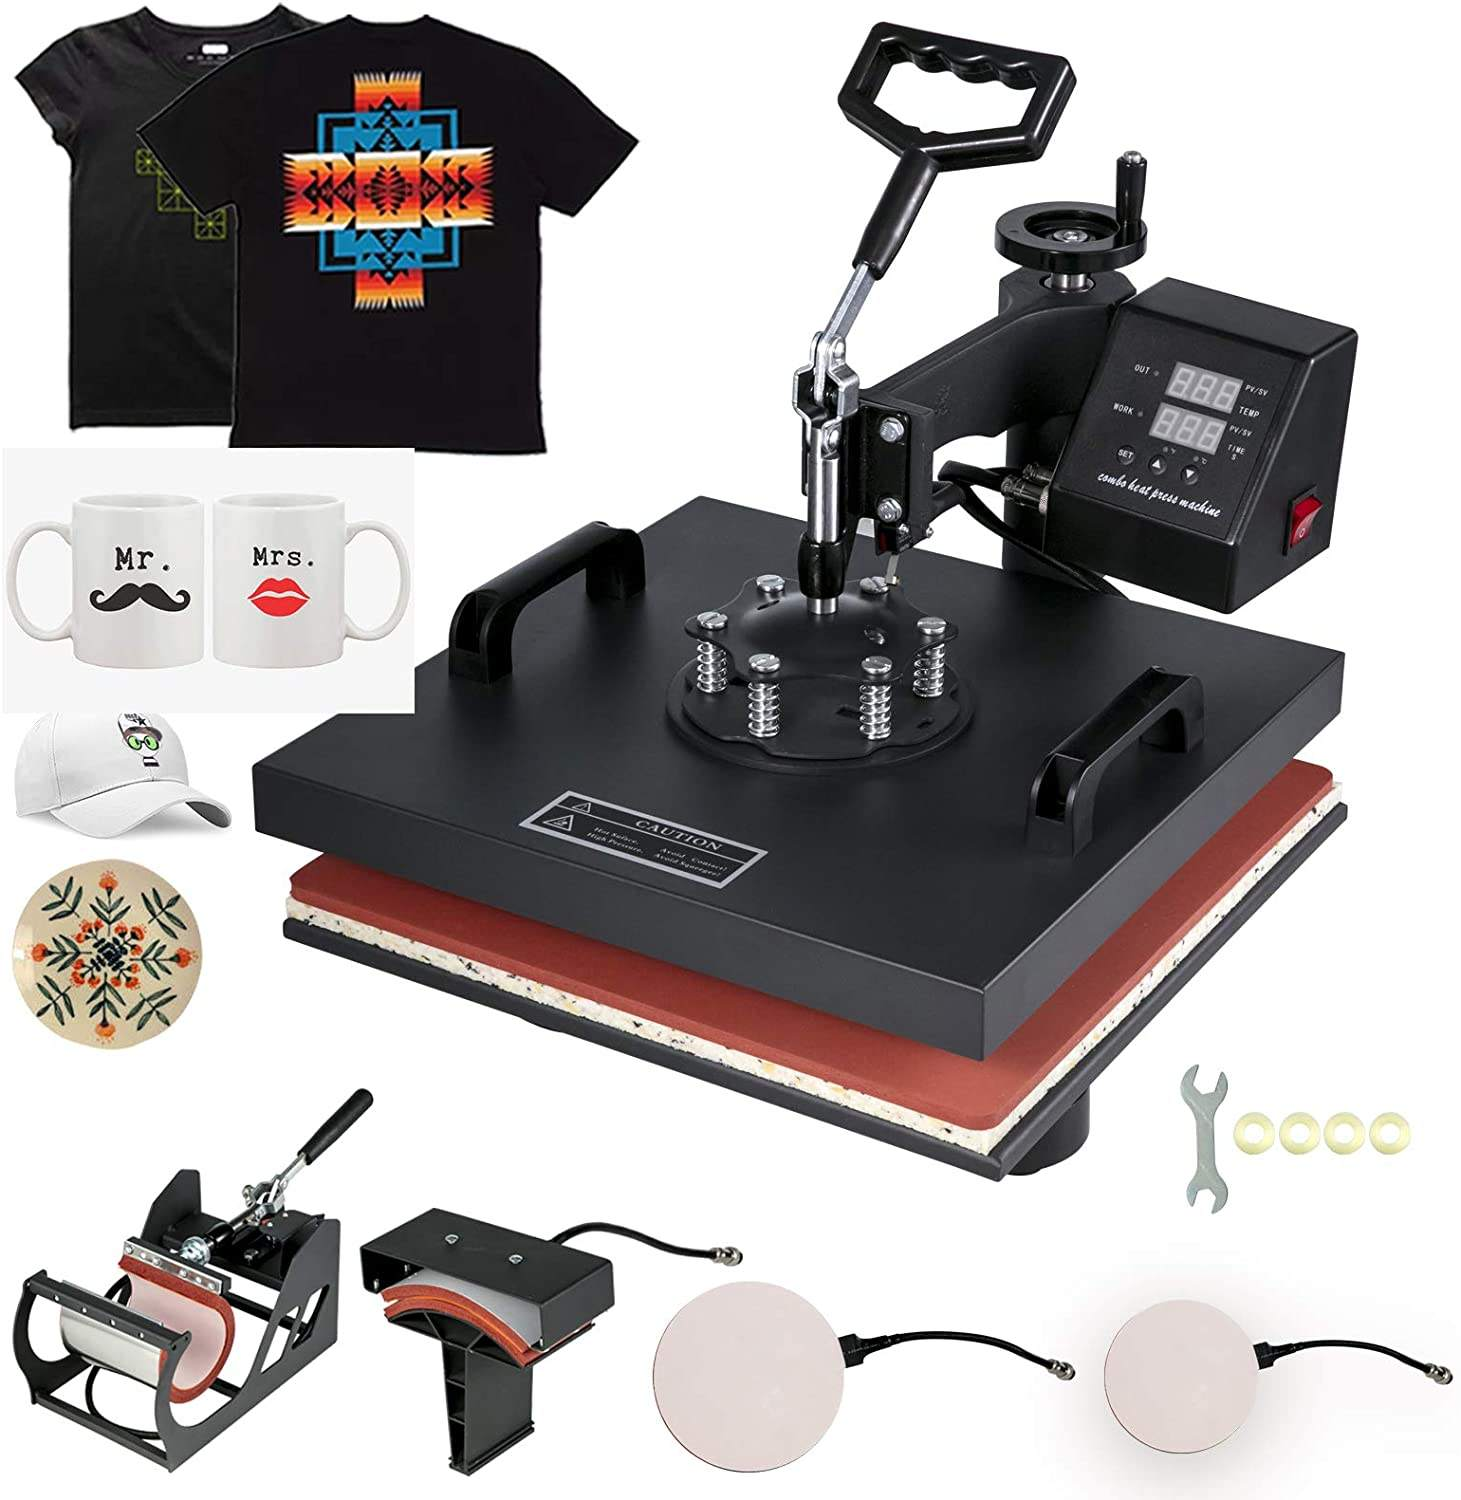 Heat Press 15x15 inch Heat Press 5 in 1 Digital Multifunctional Sublimation Auto-Countdown Heat Press Machine for T Shirts Hat